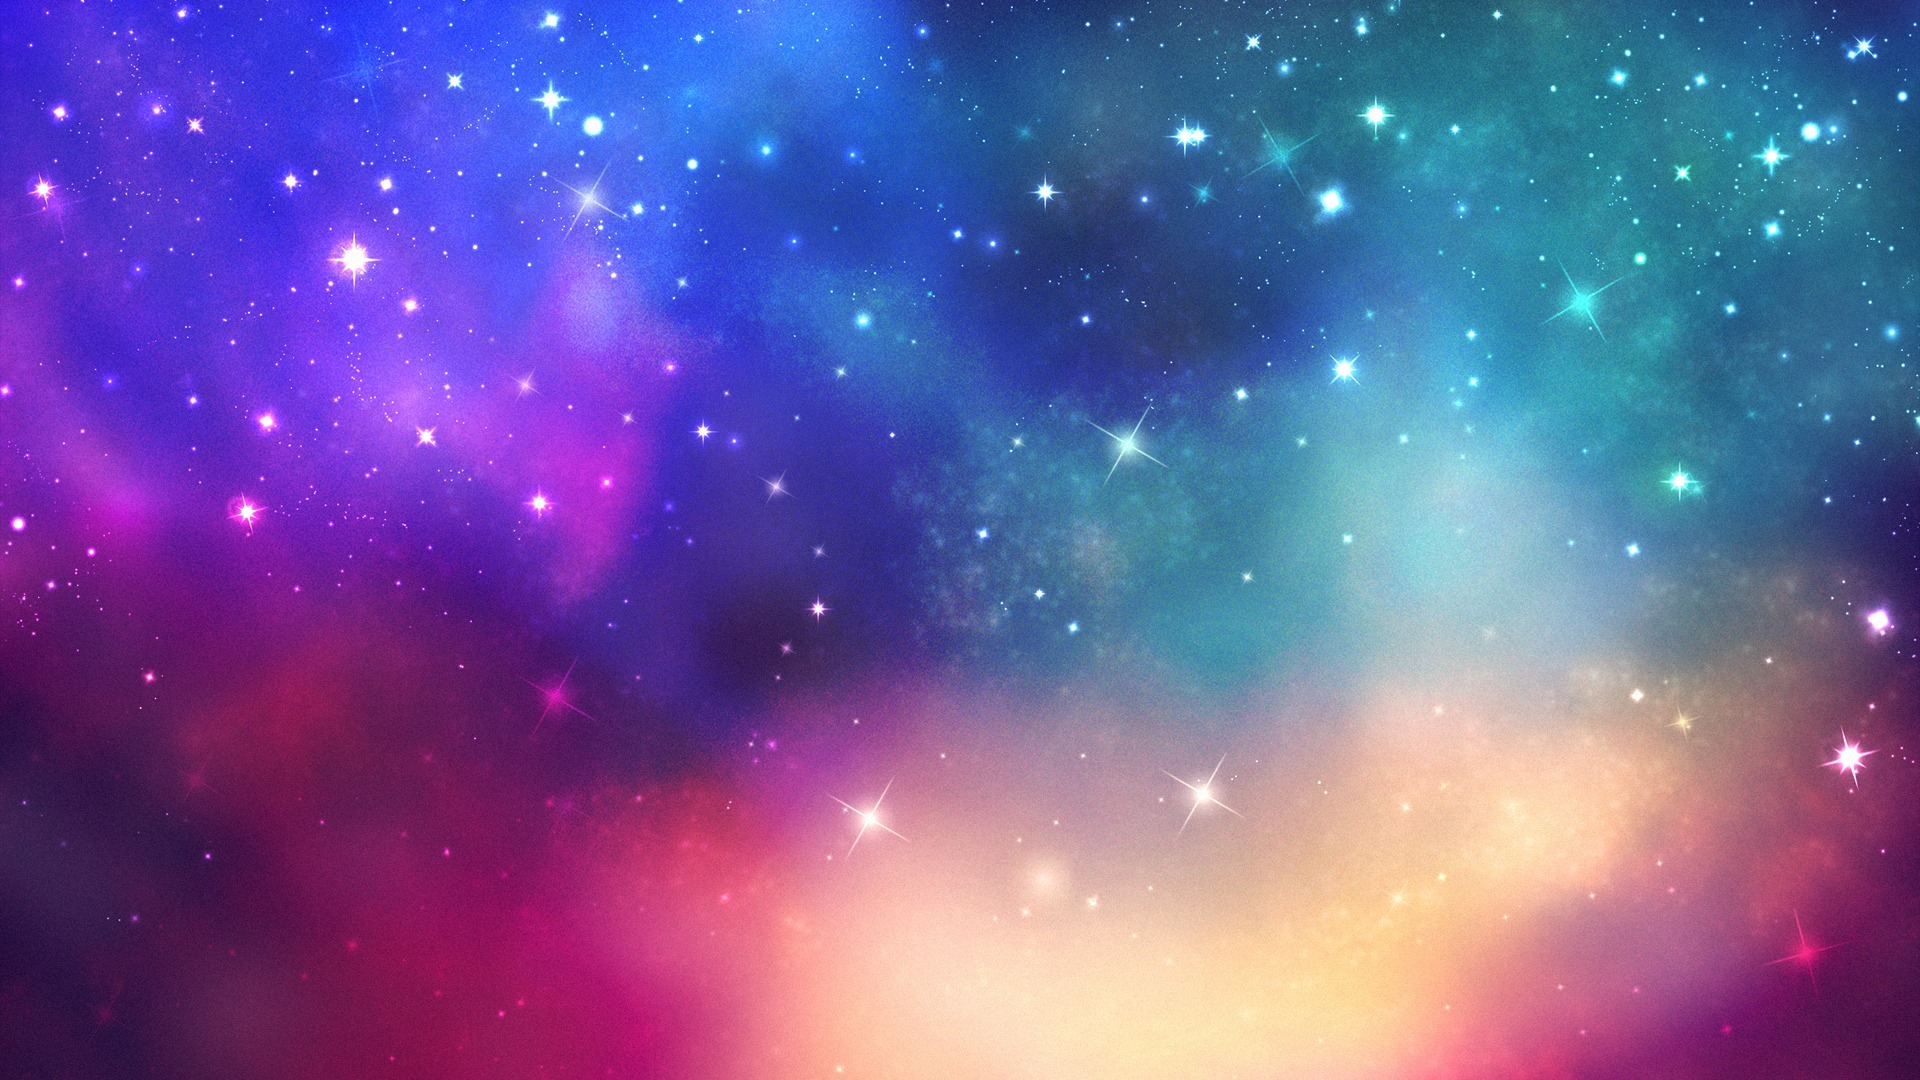 Space Stars wallpaper   1245307 1920x1080